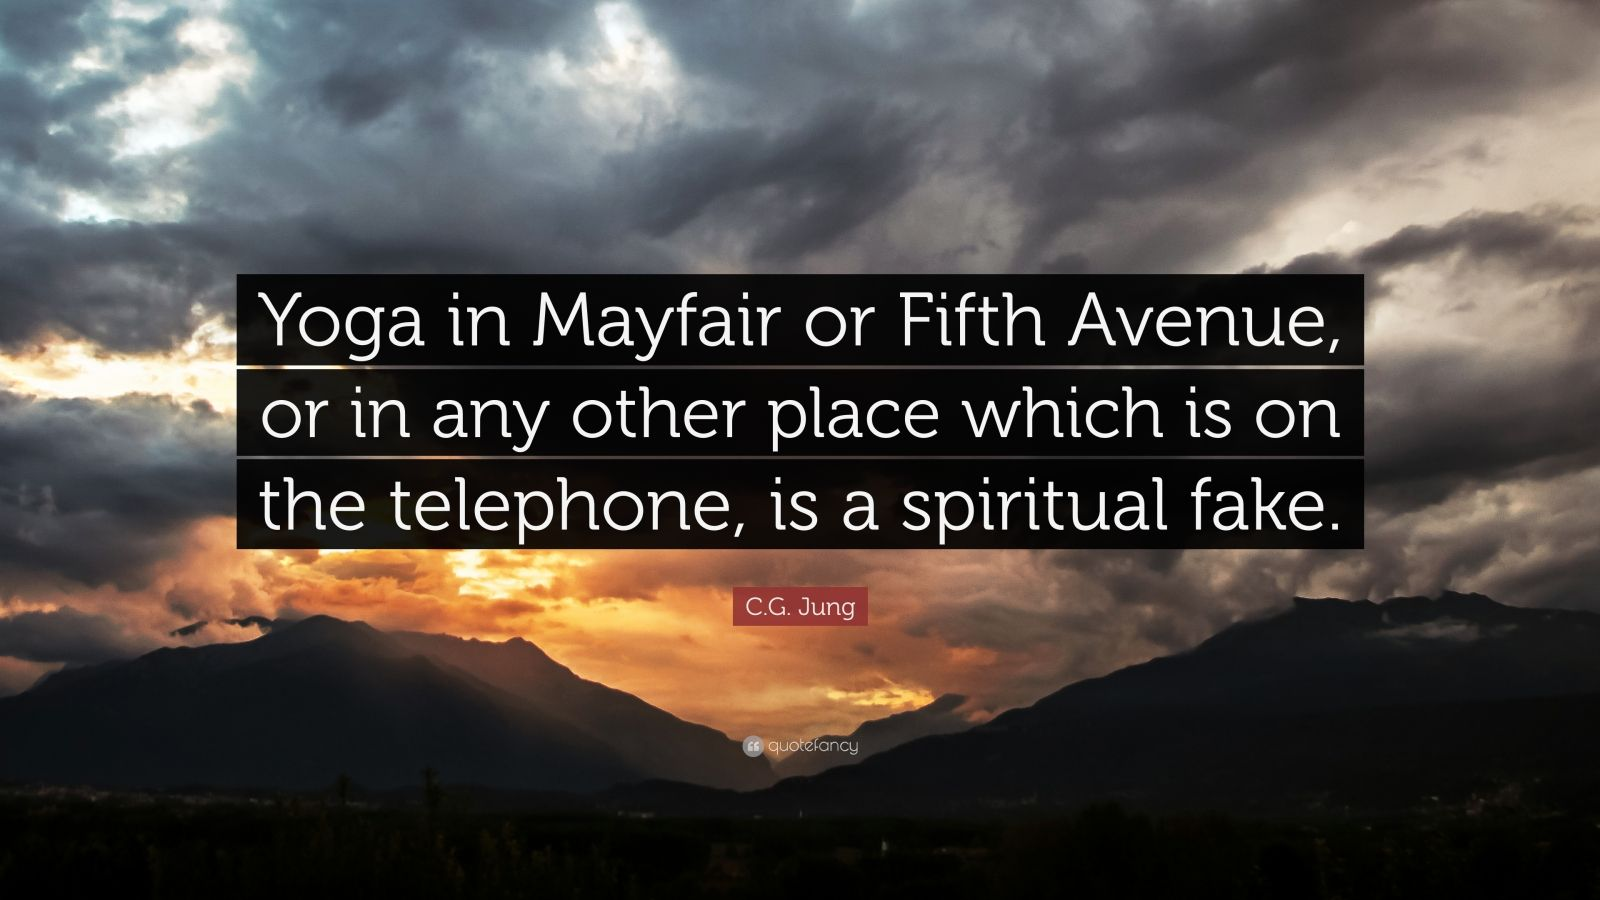 """C.G. Jung Quote: """"Yoga in Mayfair or Fifth Avenue, or in any other place which is on the telephone, is a spiritual fake."""""""